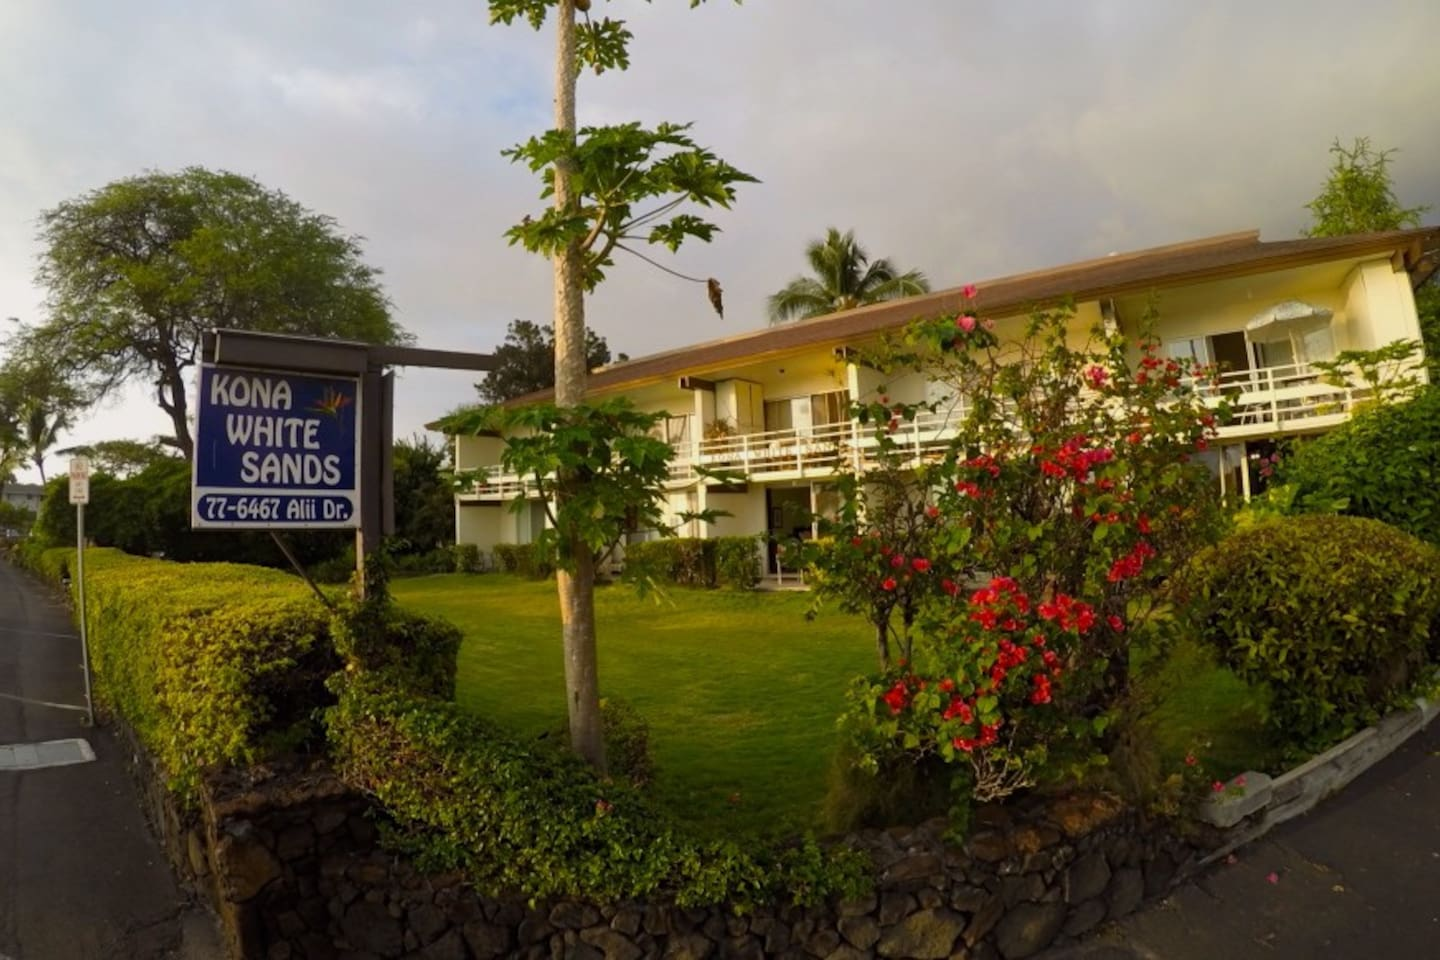 Oceanfront & New @ Magic Sands Bch! - Apartments for Rent in Kailua ...